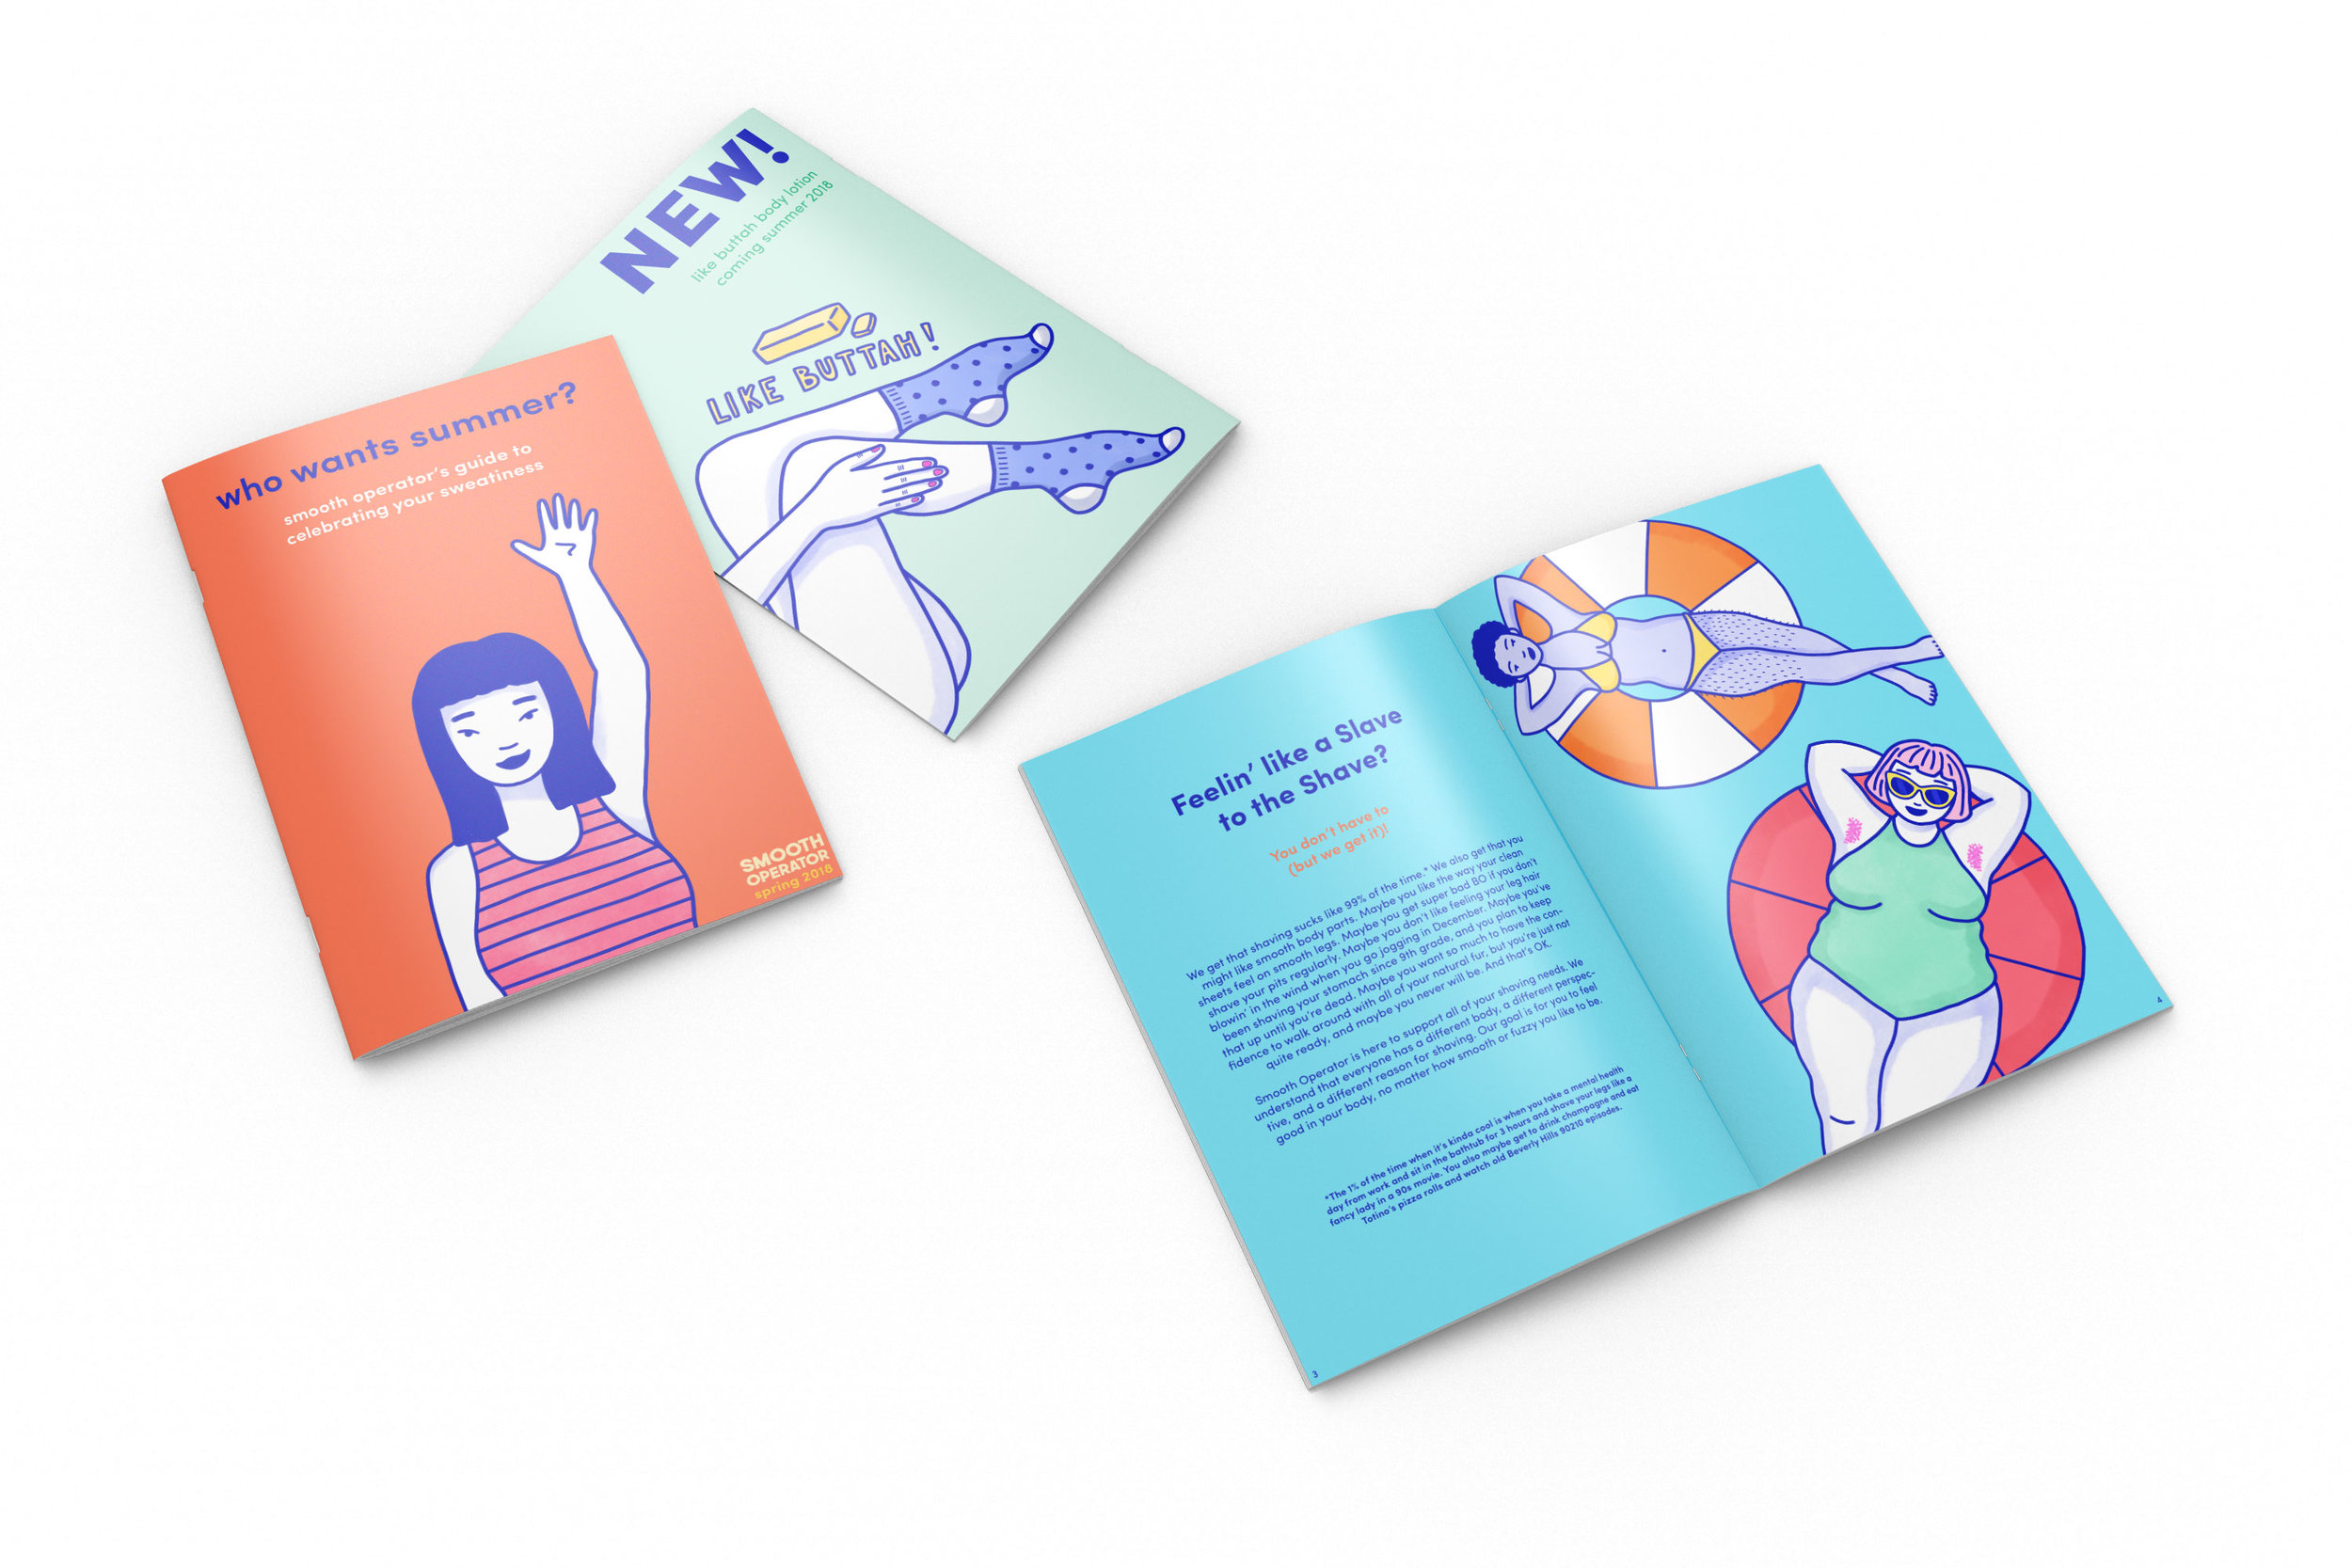 Booklet that accompanies every delivery. The Smooth Operator booklet includes tips, information on new products, and user-submitted advice and stories.